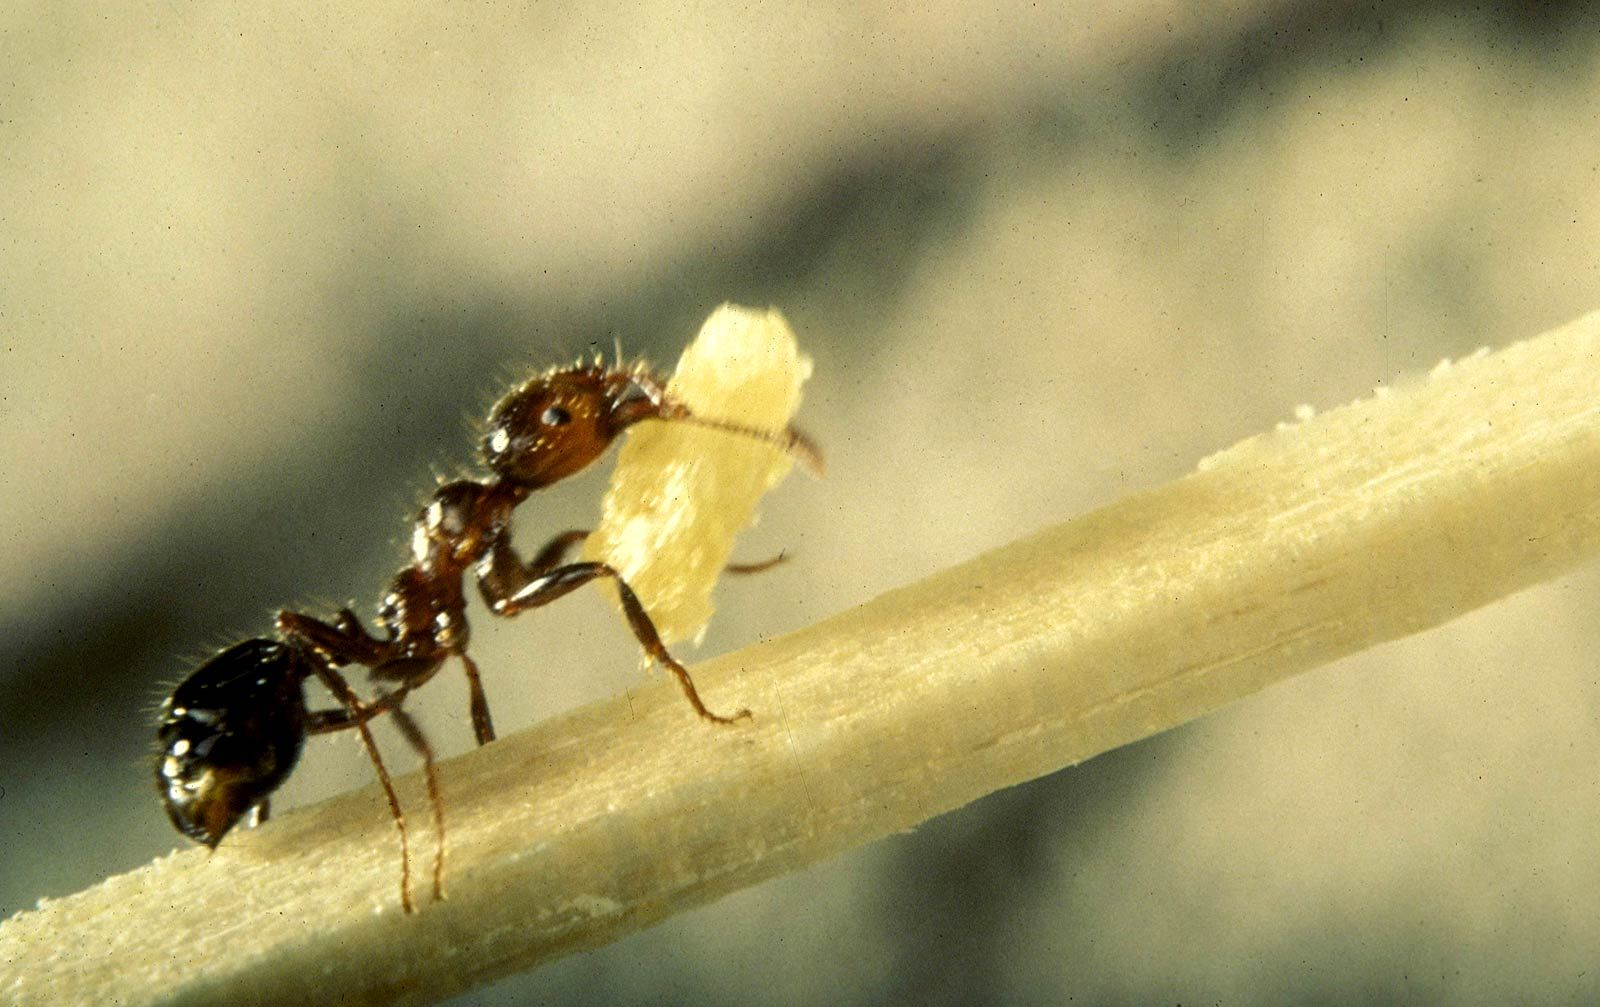 ant macro photography wallpaper worker ants insect wallpaper | ant